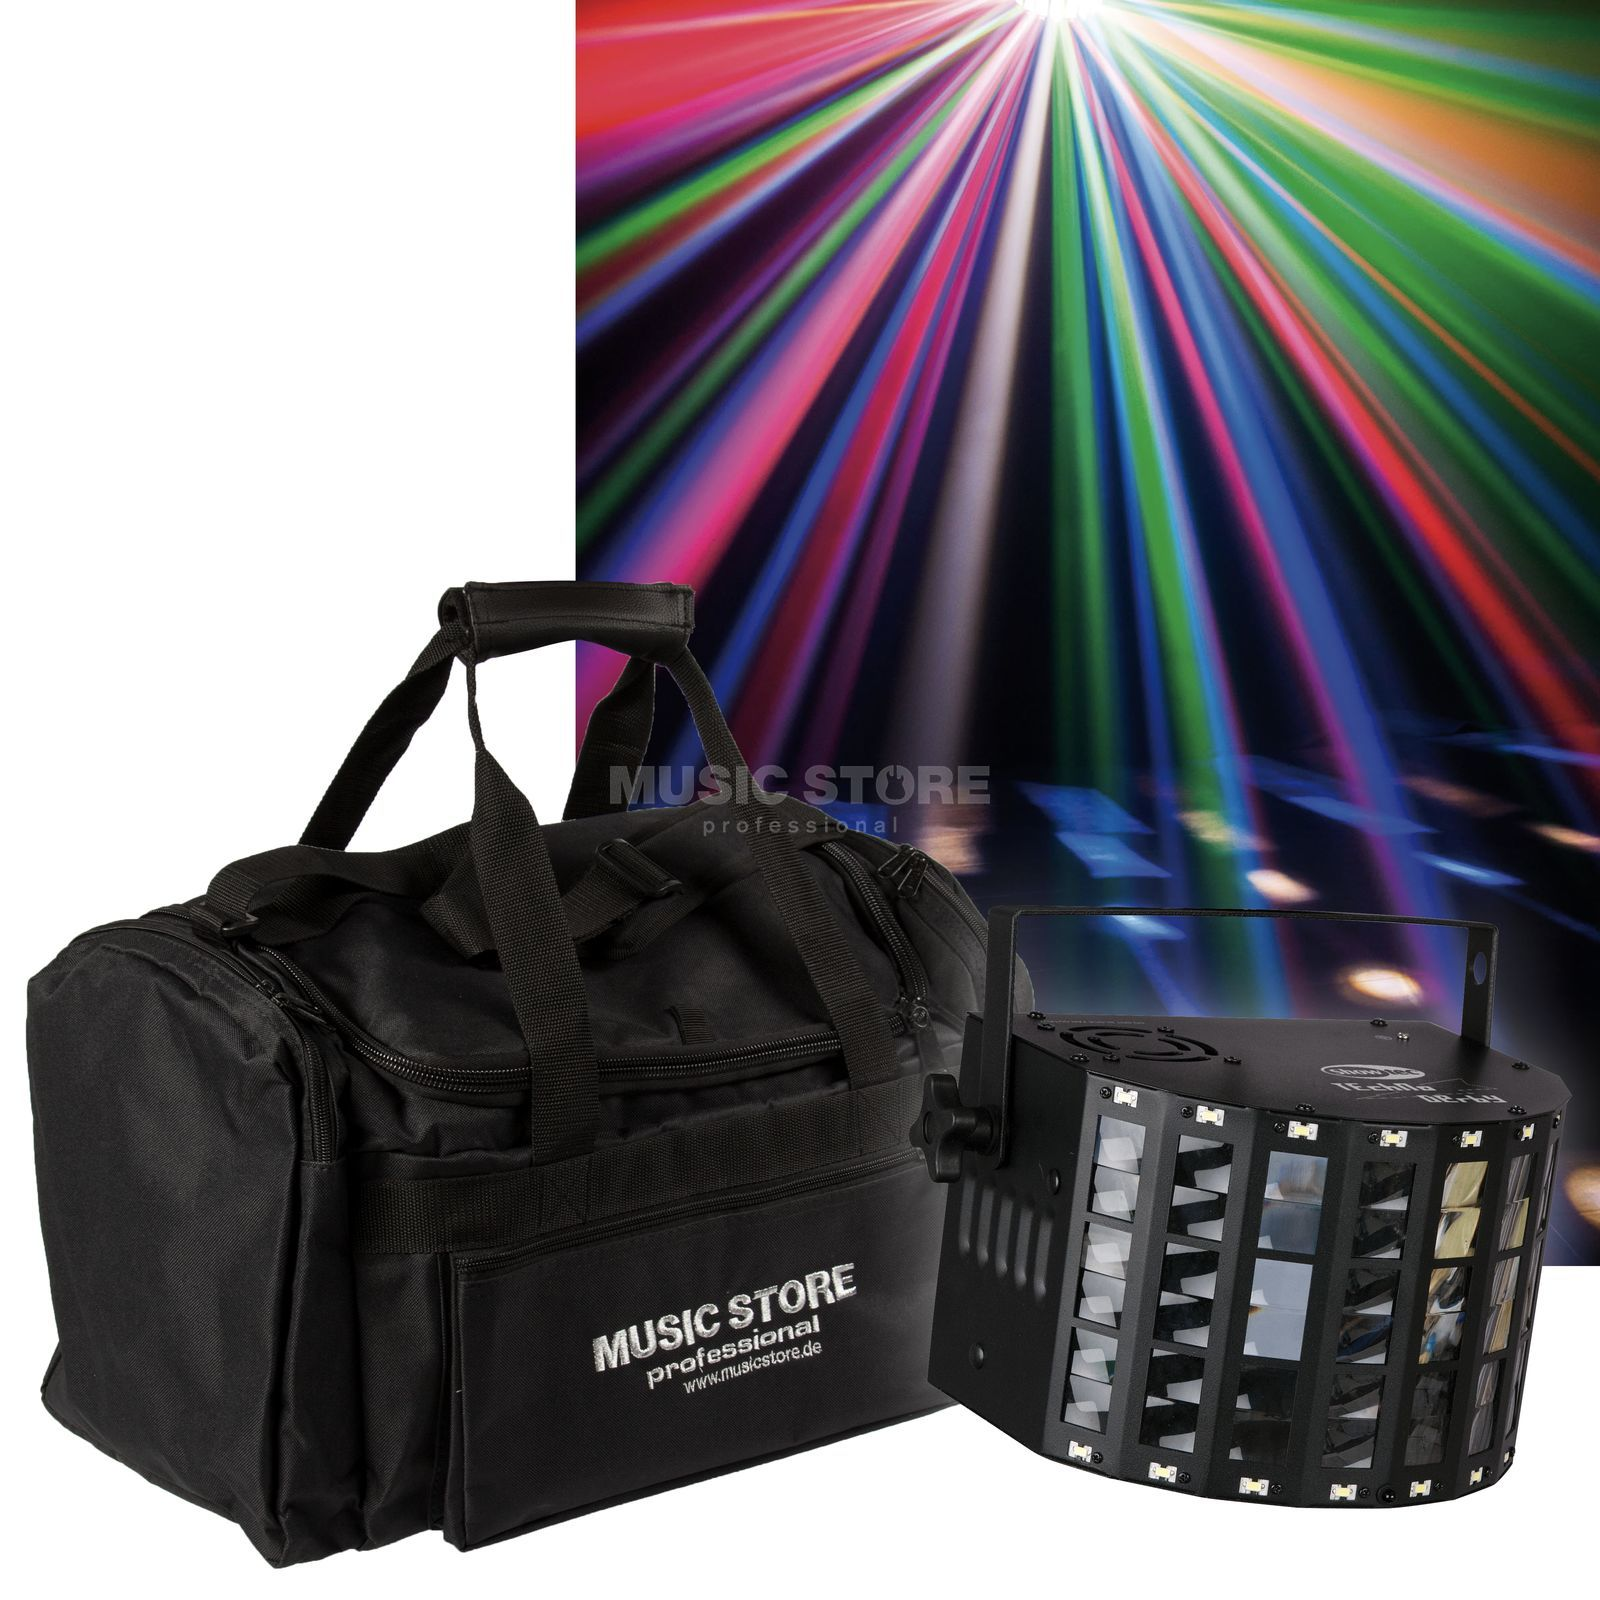 Showtec Techno Derby +  Bag - Set Product Image